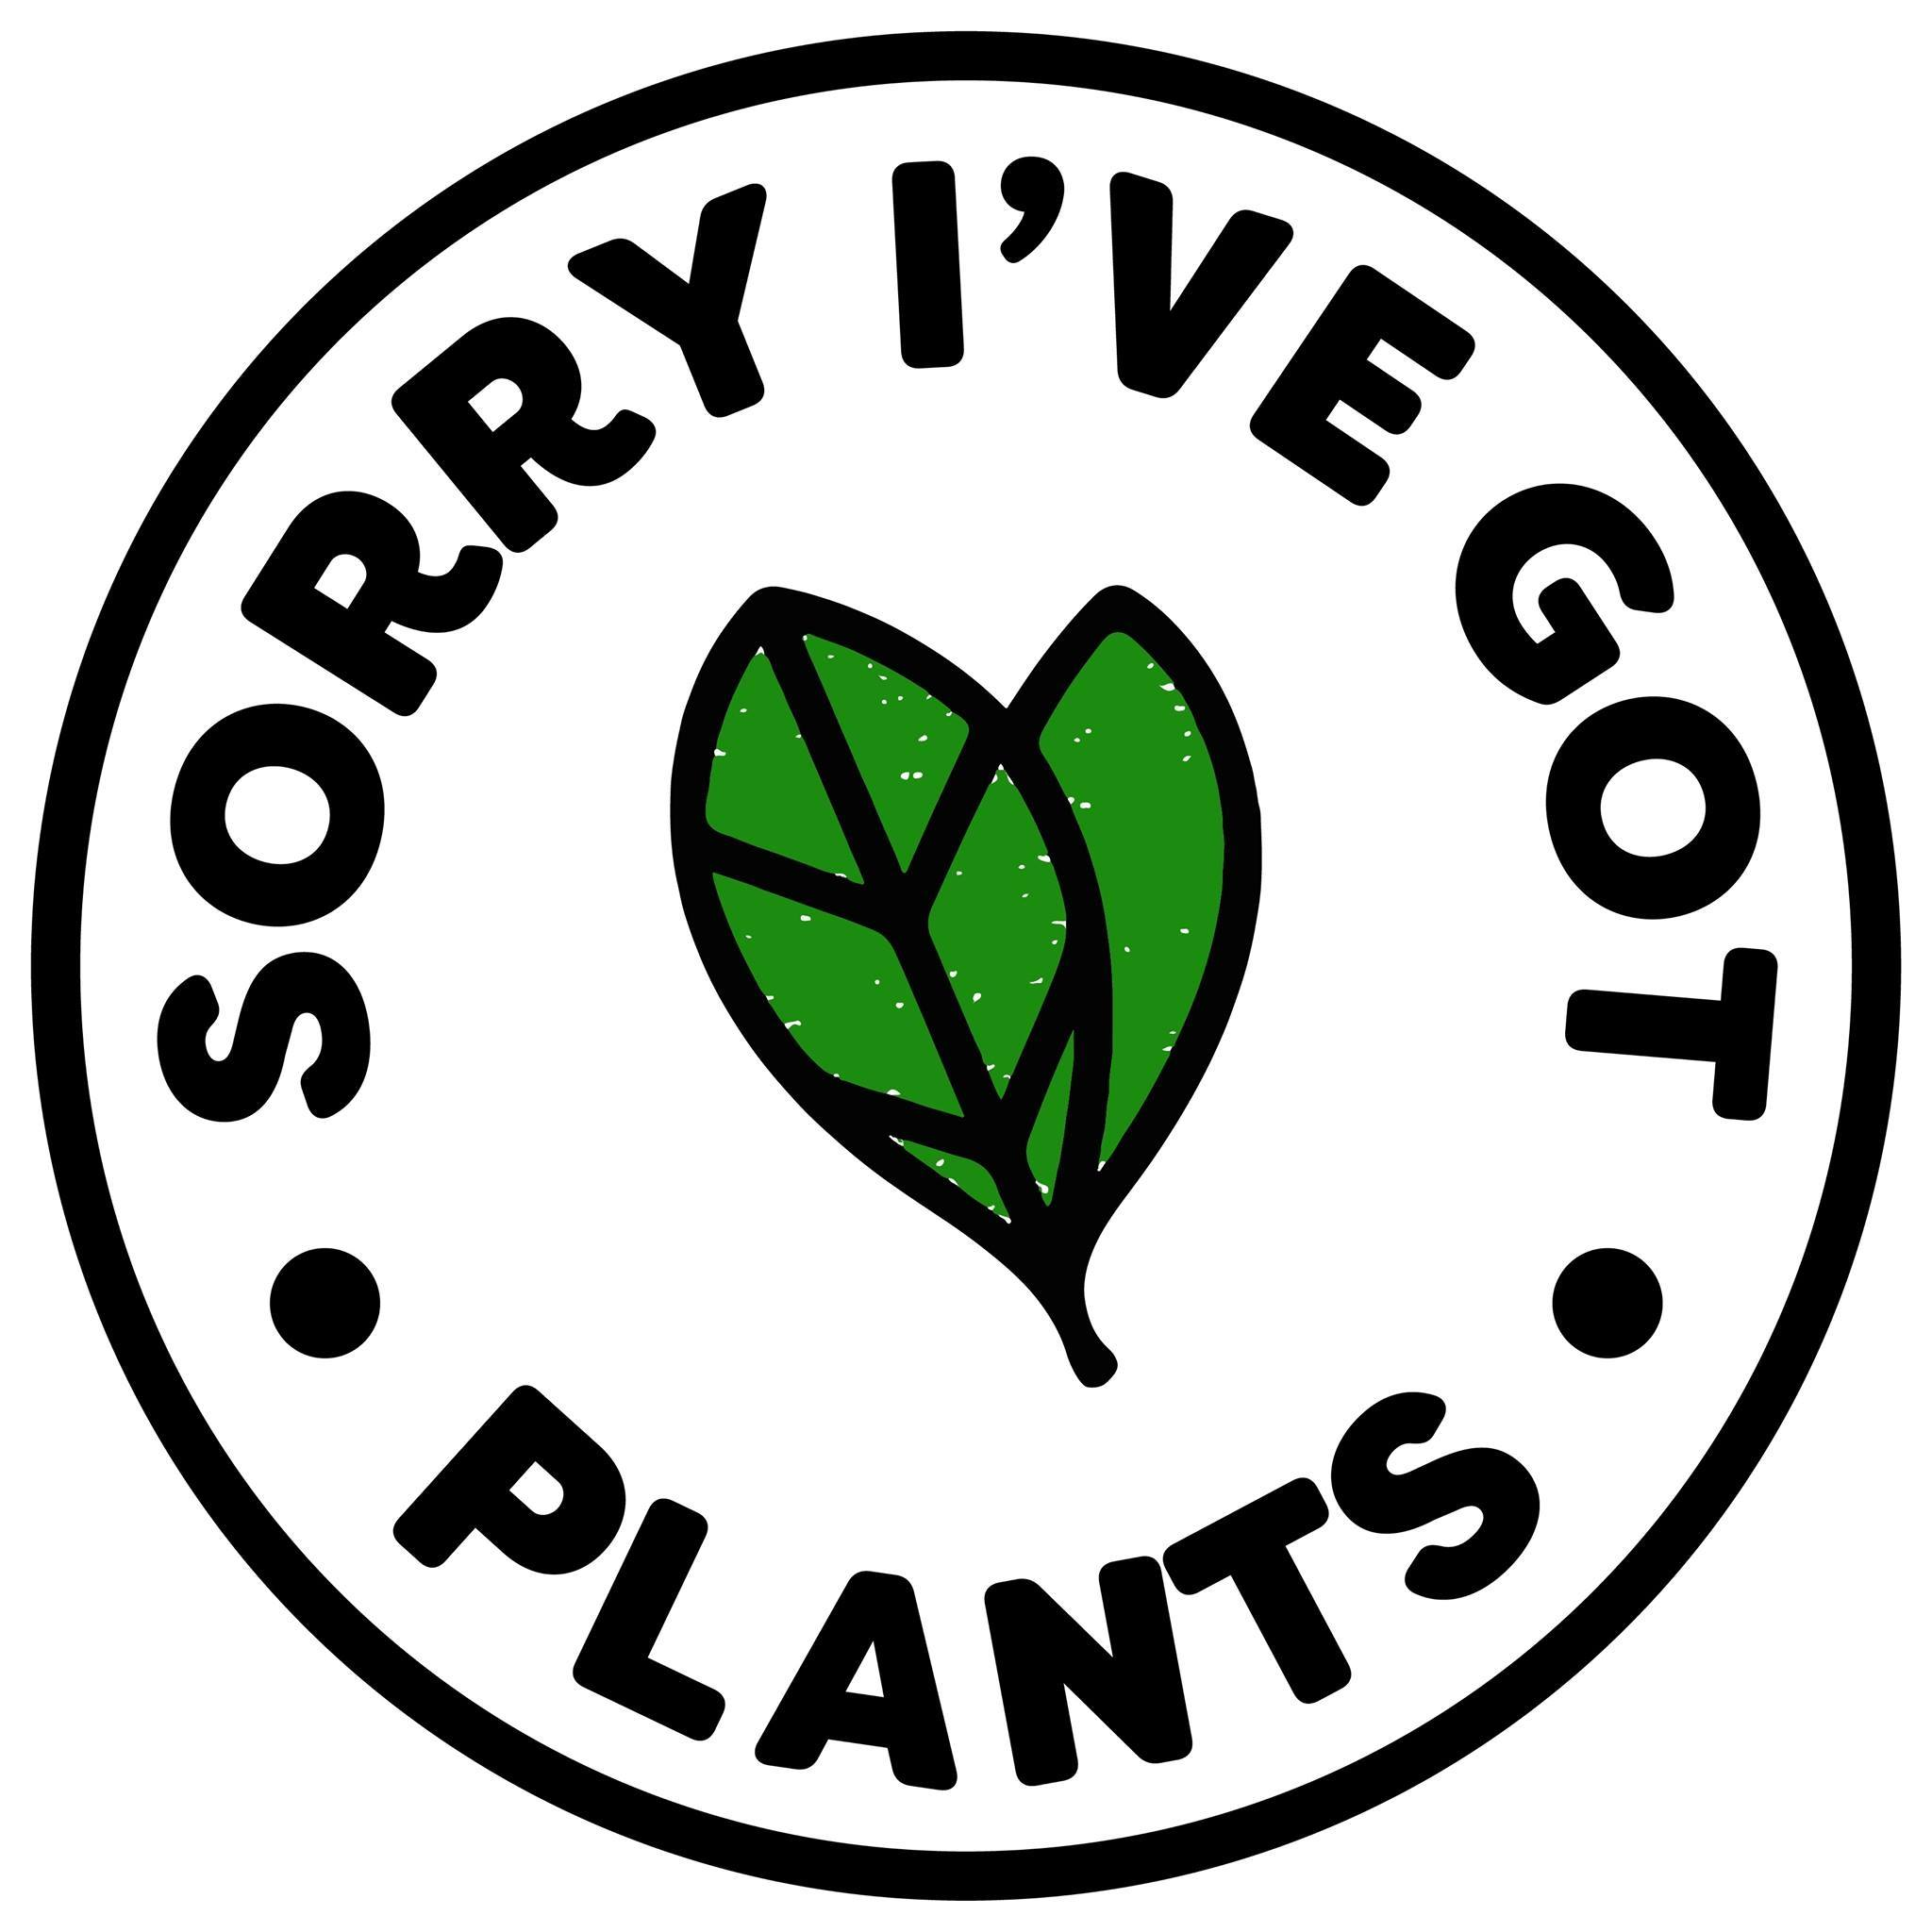 Sorry I've got plants pretzels